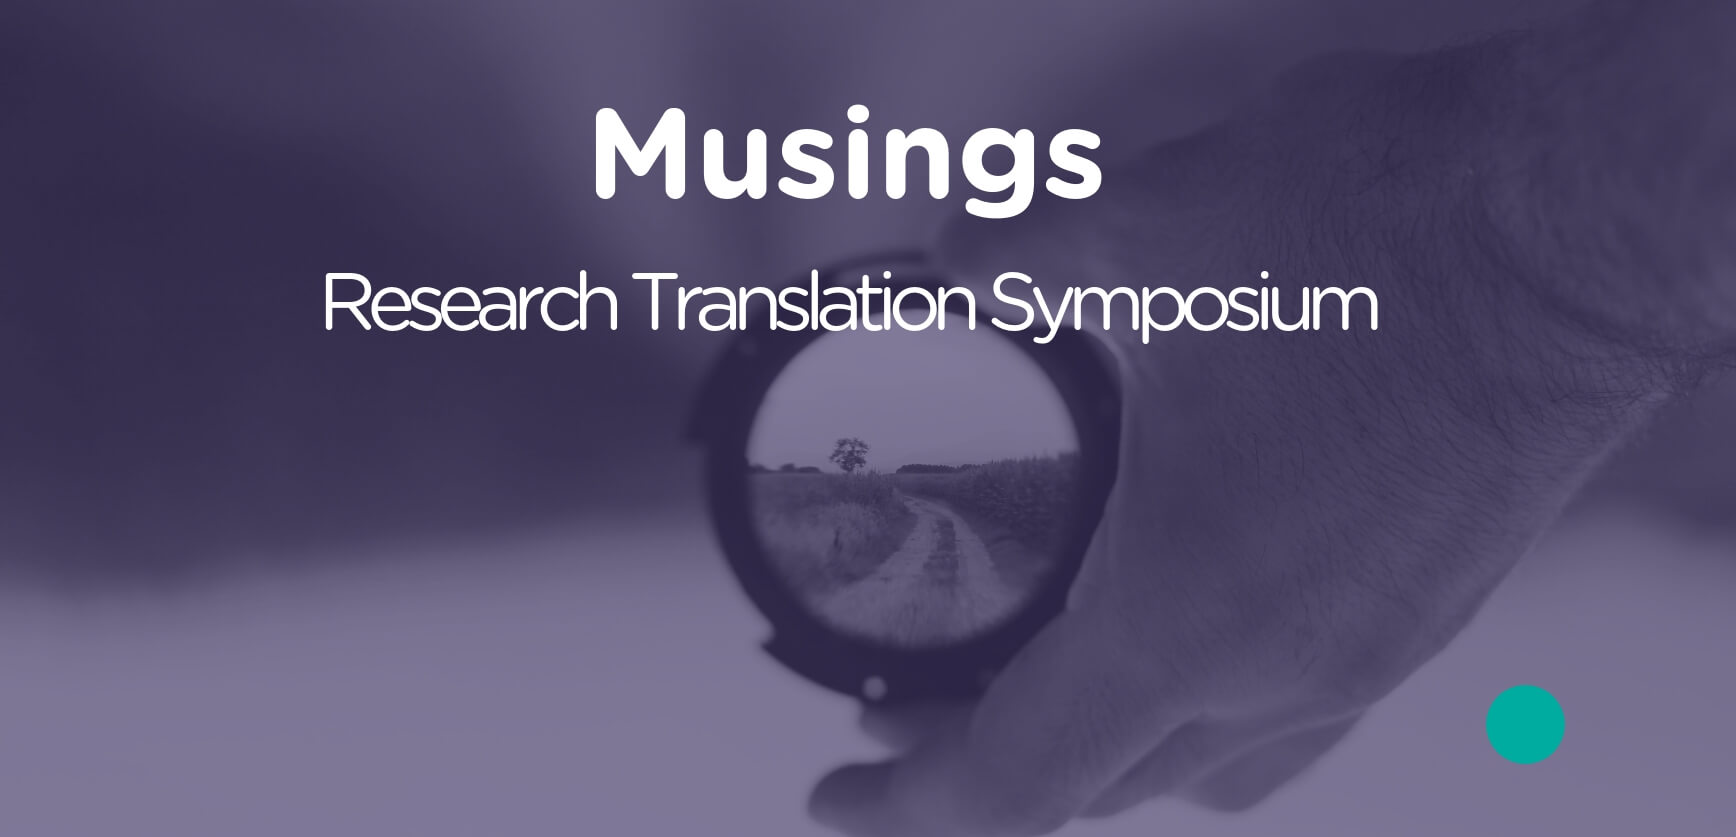 Highlights and musings from the NHMRC Research Translation Symposium